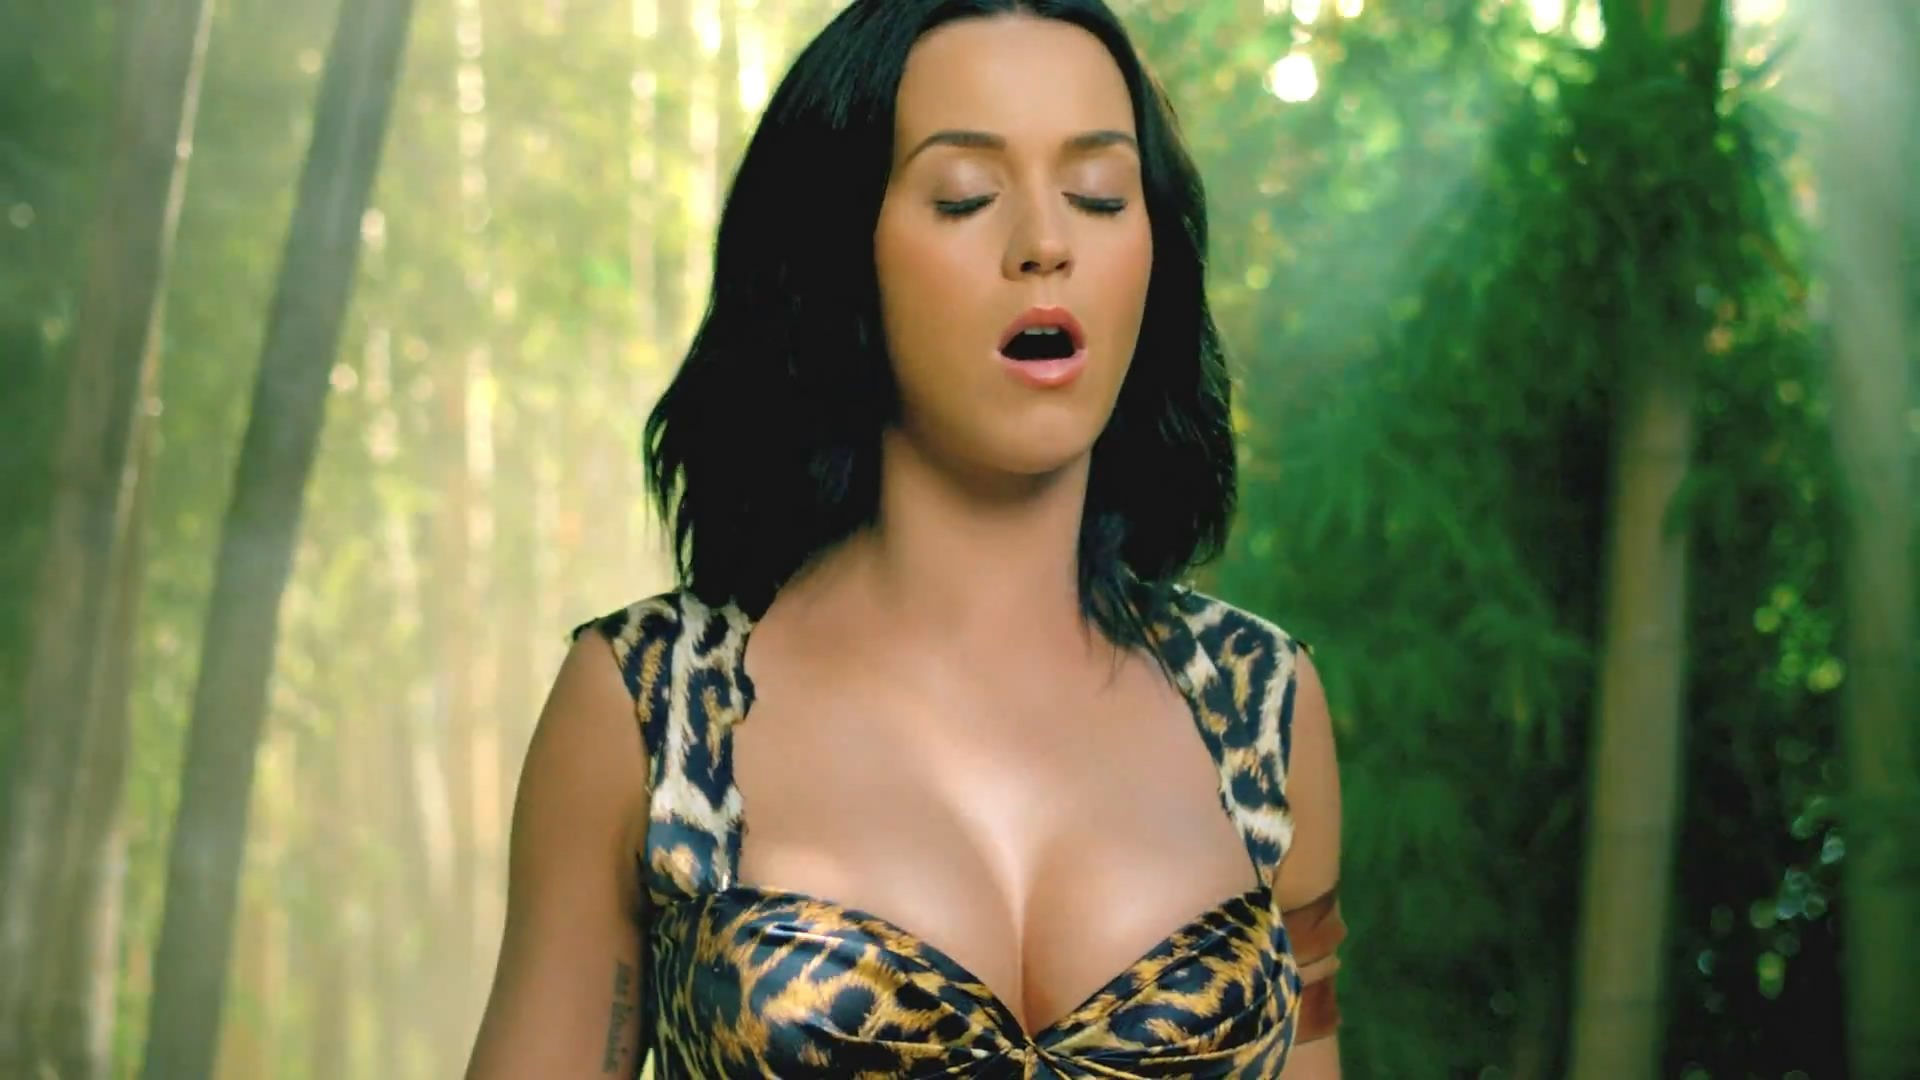 Katy Perry Roar Wallpaper - WallpaperSafari